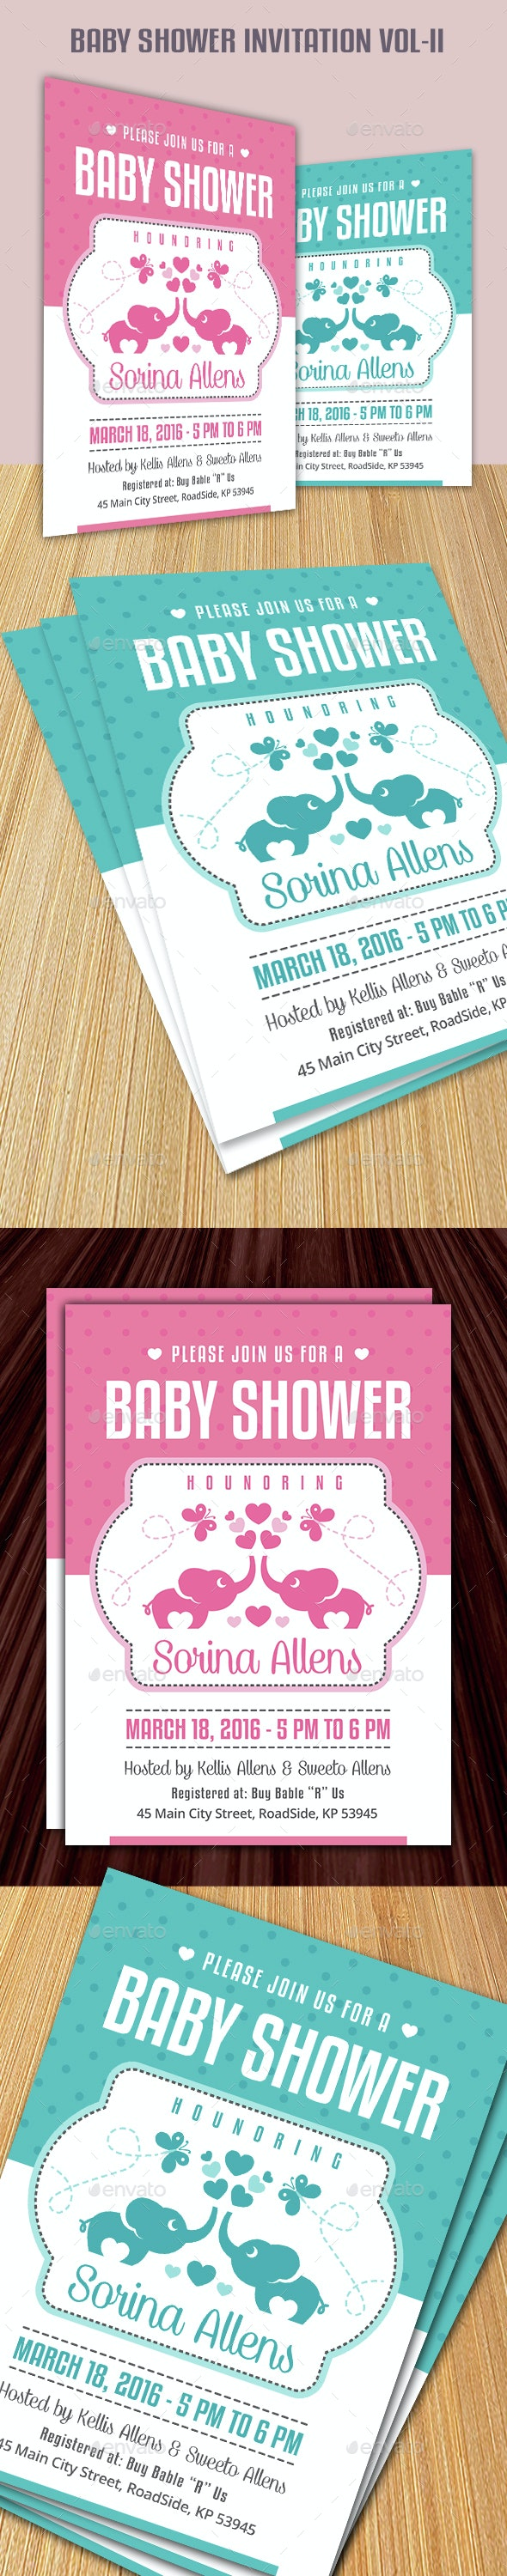 Baby Shower Invitation Vol-II - Invitations Cards & Invites